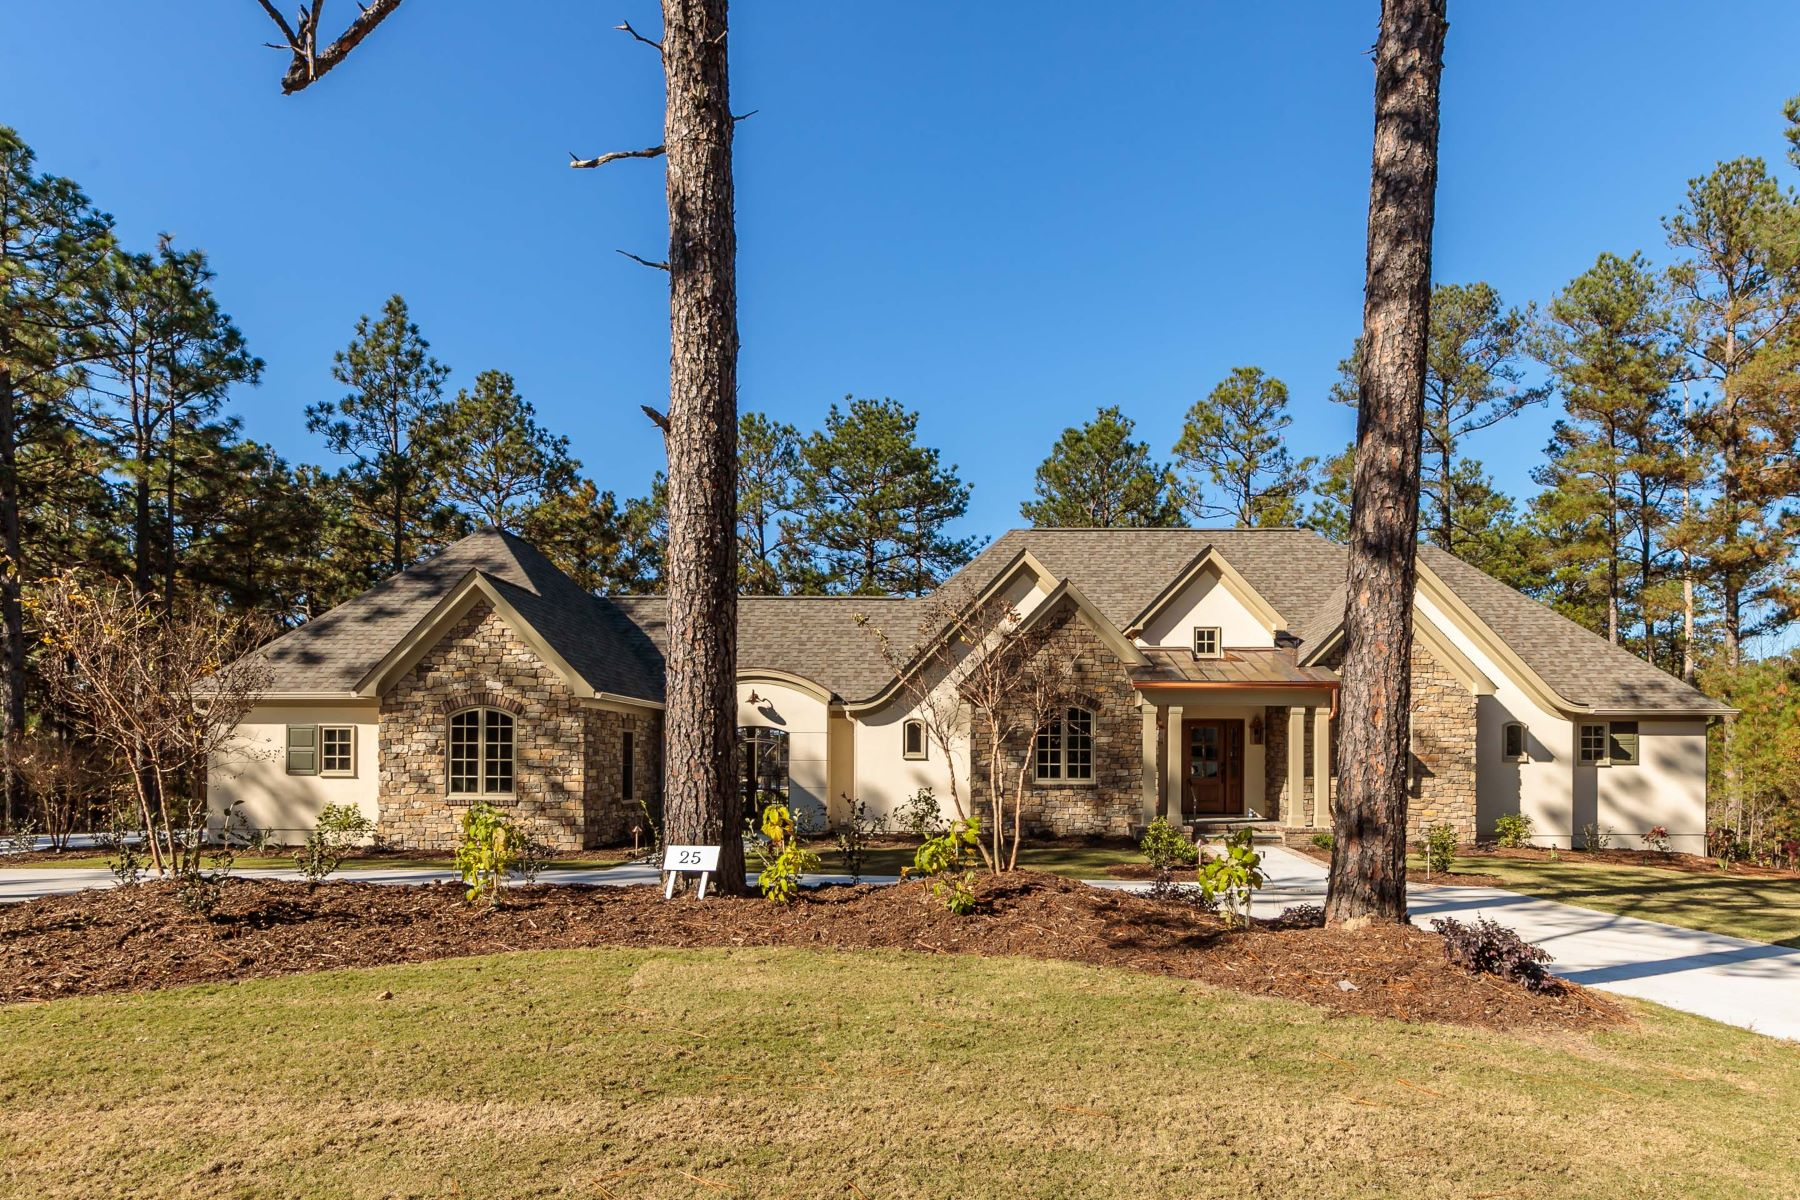 Single Family Home for Active at Exquisite Custom Built Home in Forest Creek 25 Elkton Dr. Pinehurst, North Carolina 28374 United States